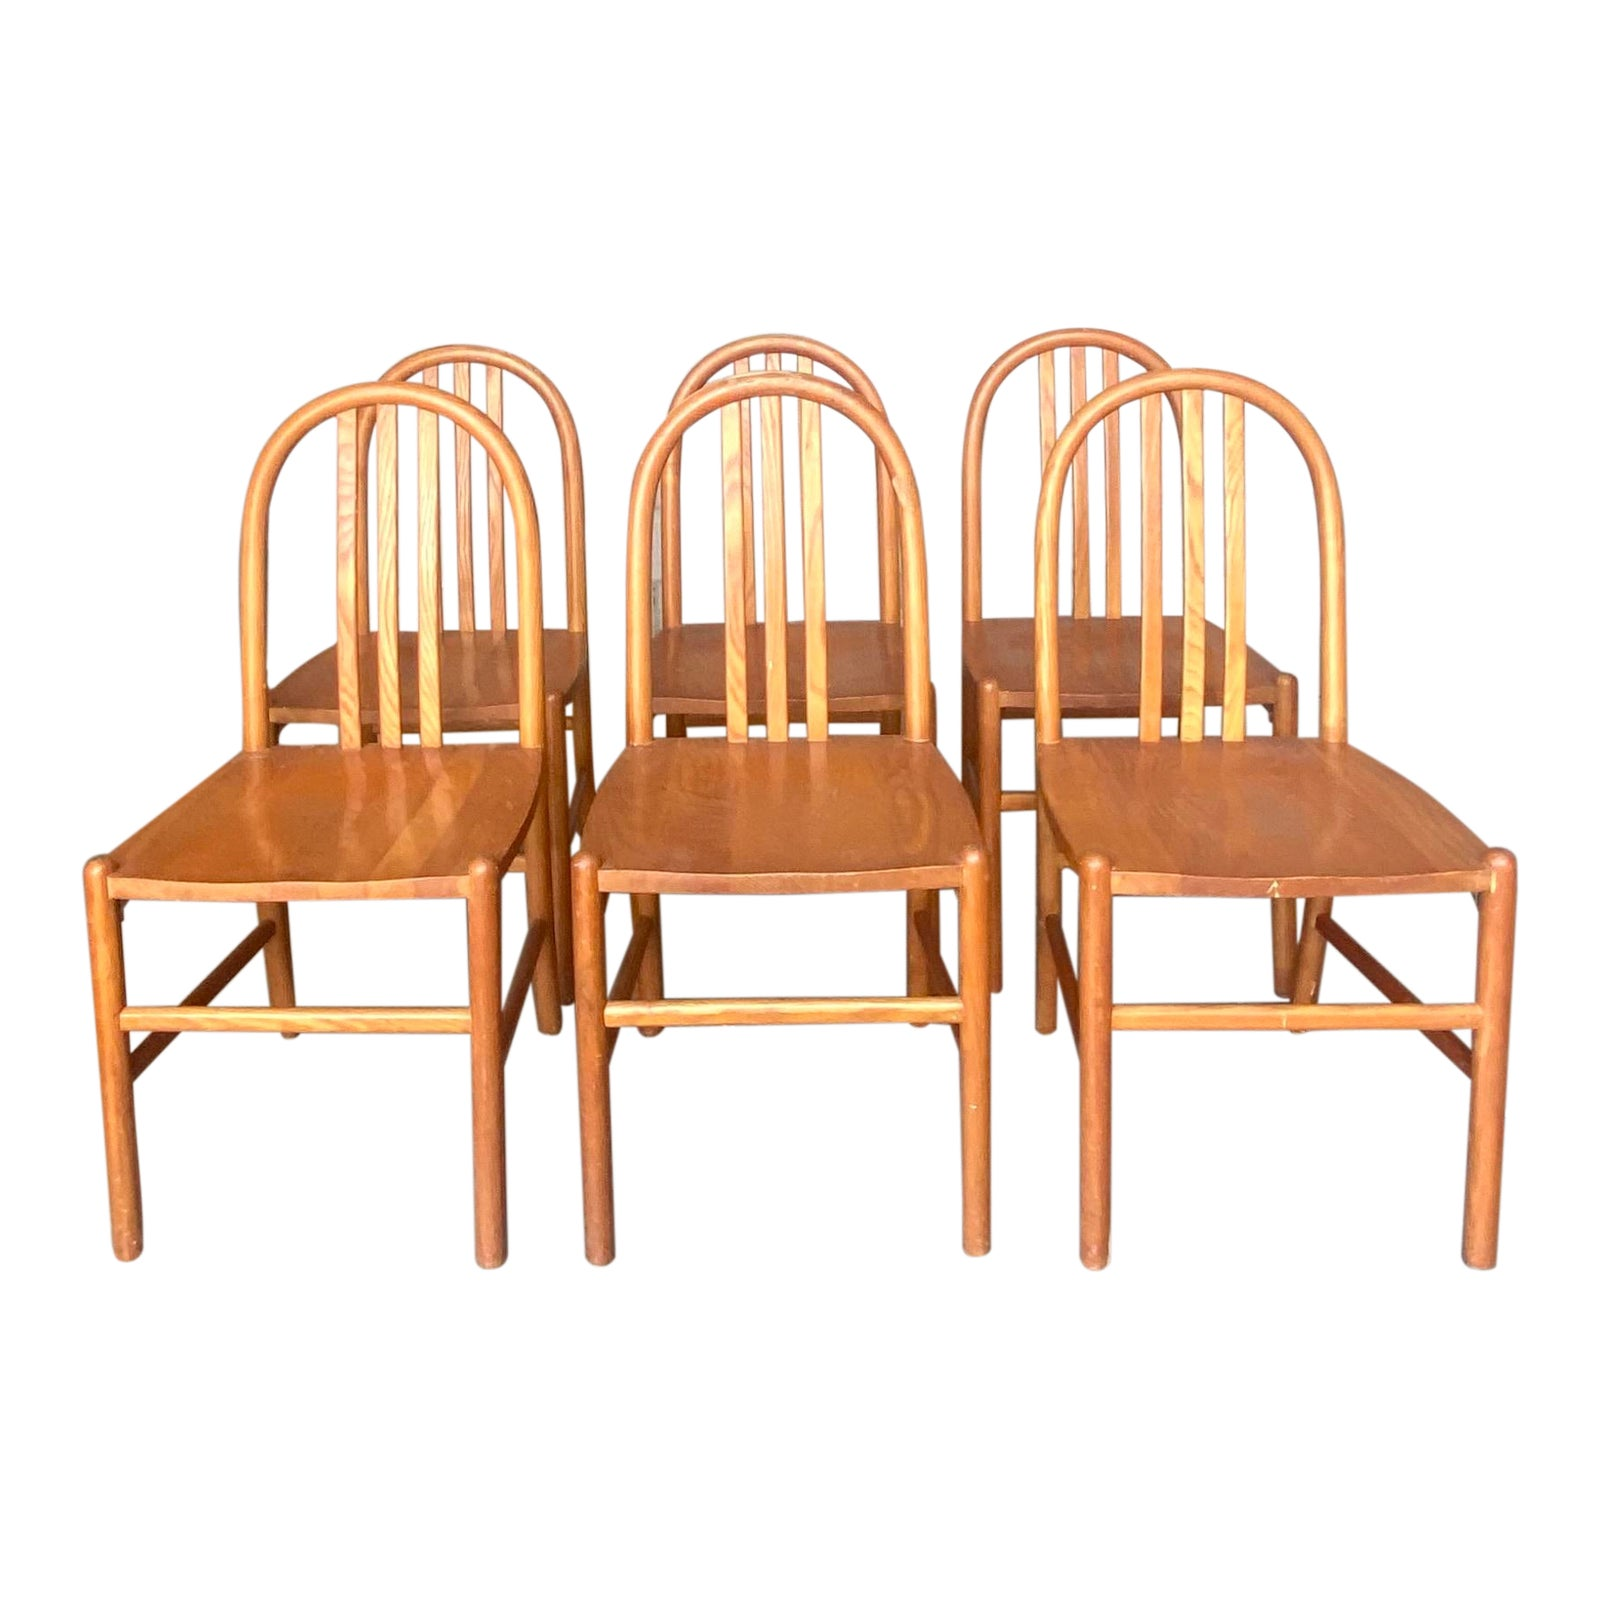 Midcentury Arch Back Dining Chairs After Robert Mallot Stevens Chairish